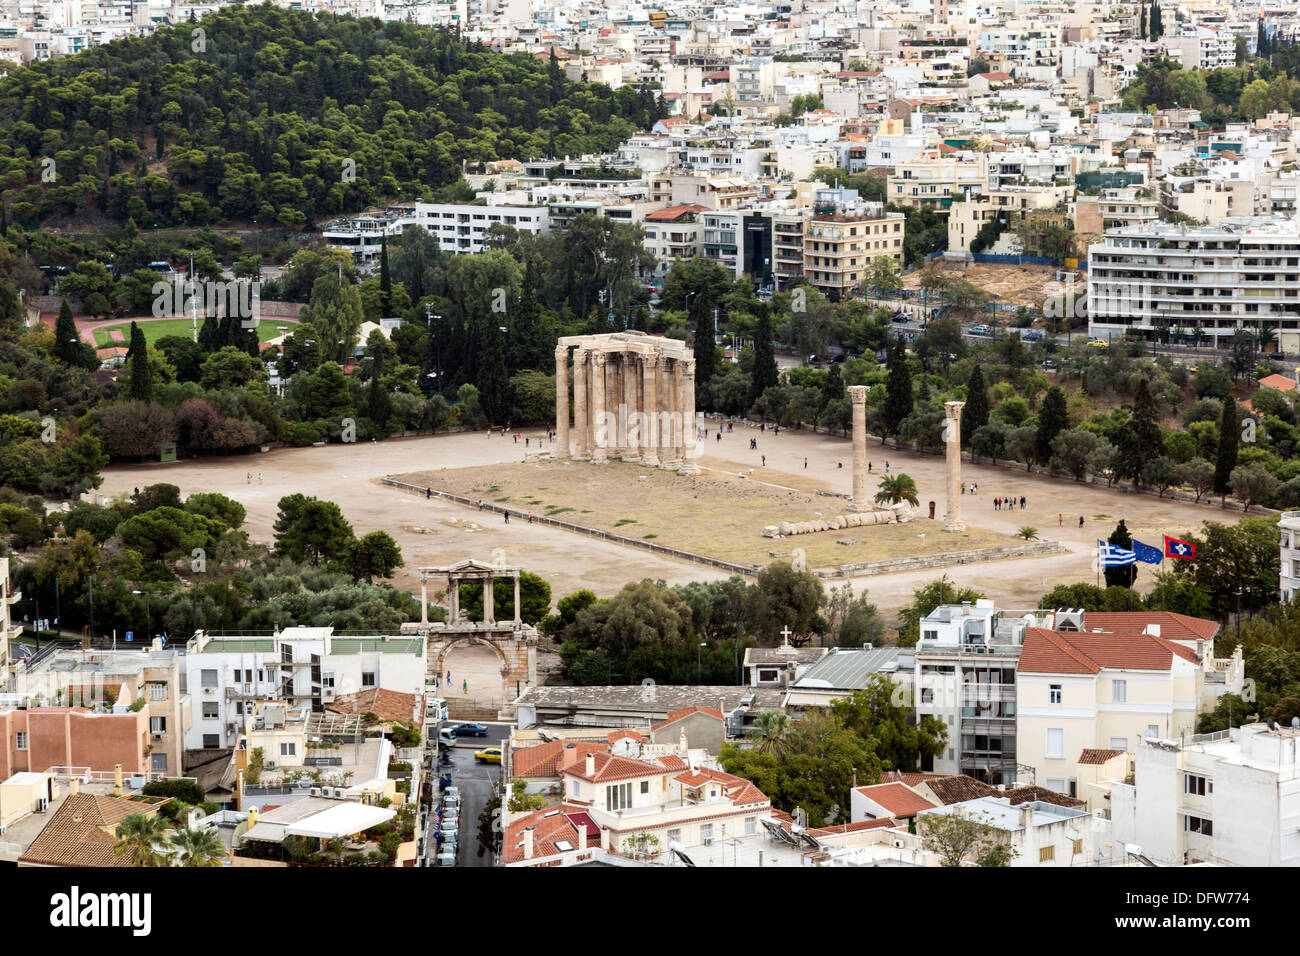 The Temple of Olympian Zeus as seen from Acropolis hill. Athens, Greece on October 4, 2013. - Stock Image